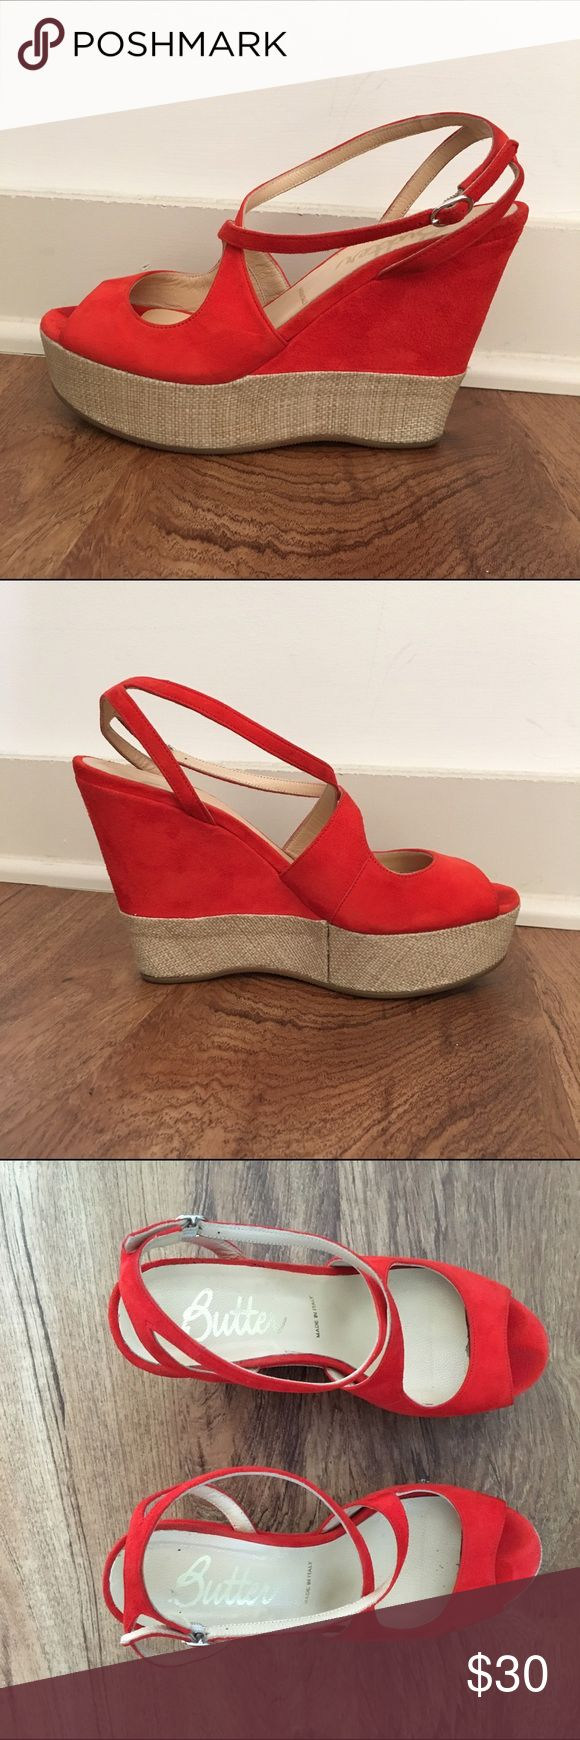 """Butter Orange Wedges Size 6.5 Bright orange wedges made in Italy. Wedge height: 4.5"""", platform heigh: 1.25"""". Really comfortable. Great pop of color! Butter Shoes Shoes Wedges"""